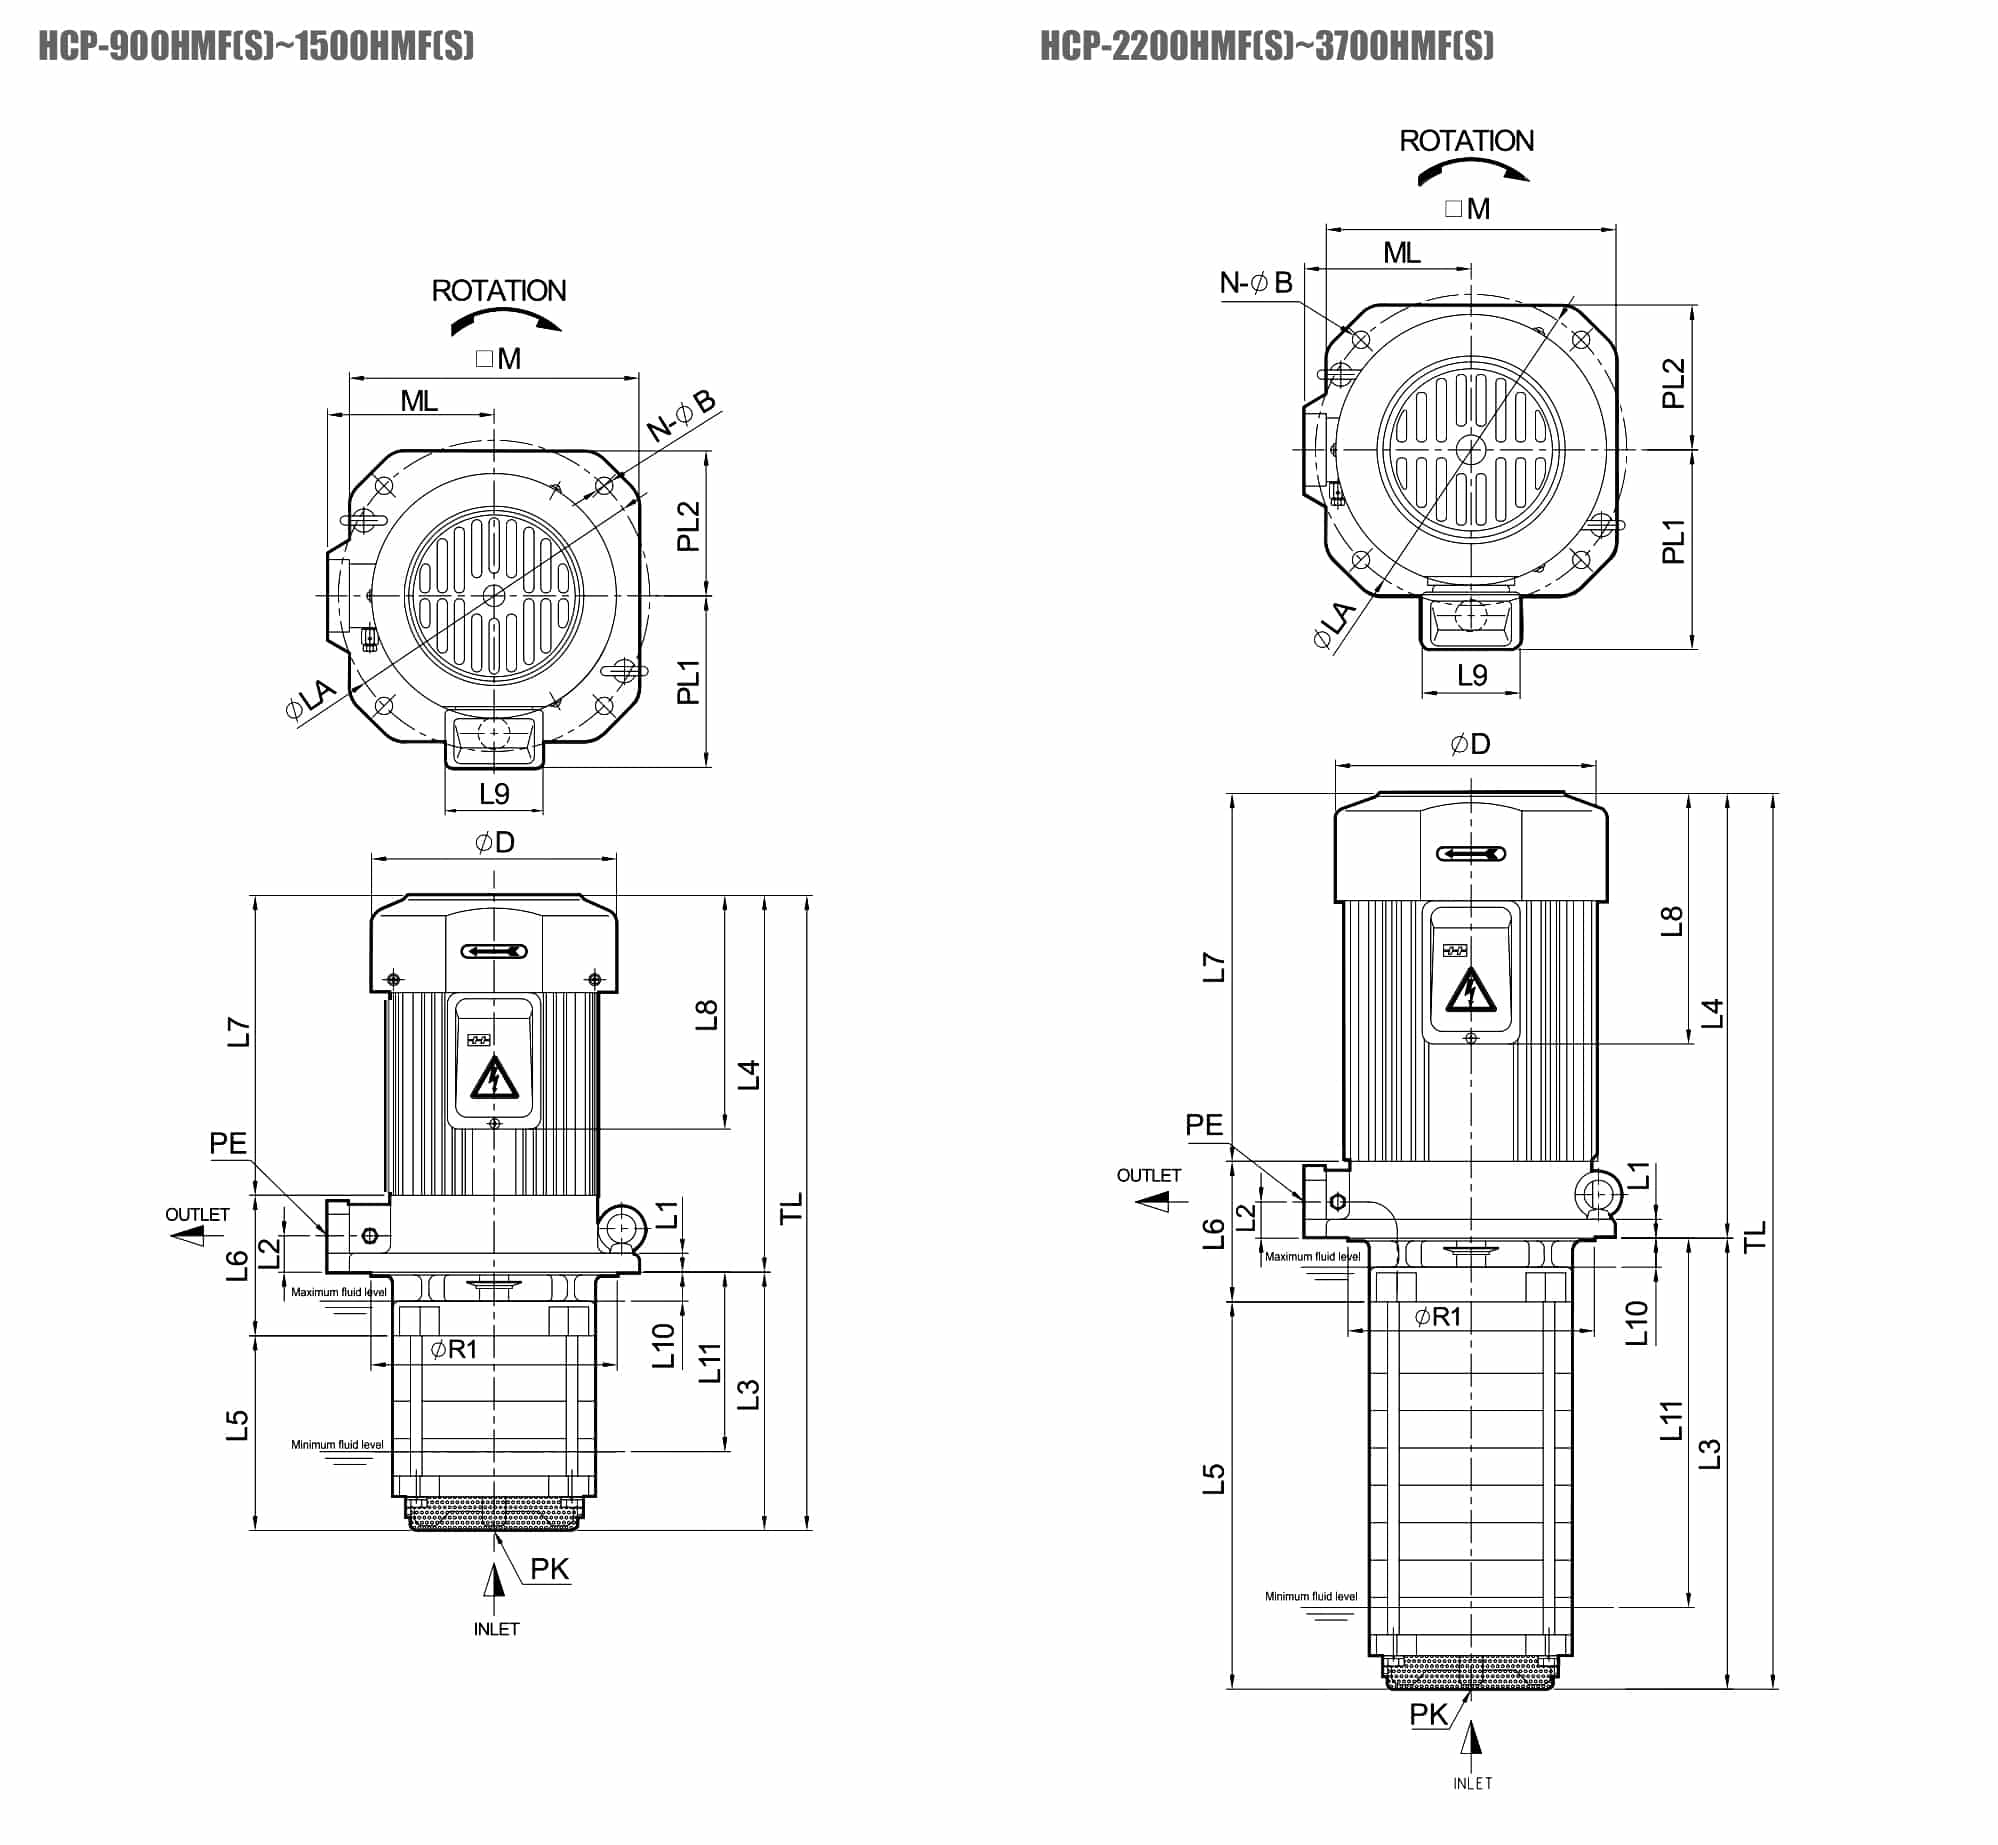 tags: #ansul system use#ansul fire suppression system manual#ansul system  schematic#ansul gas valve installation in kitchen#ansul hood fire  suppression